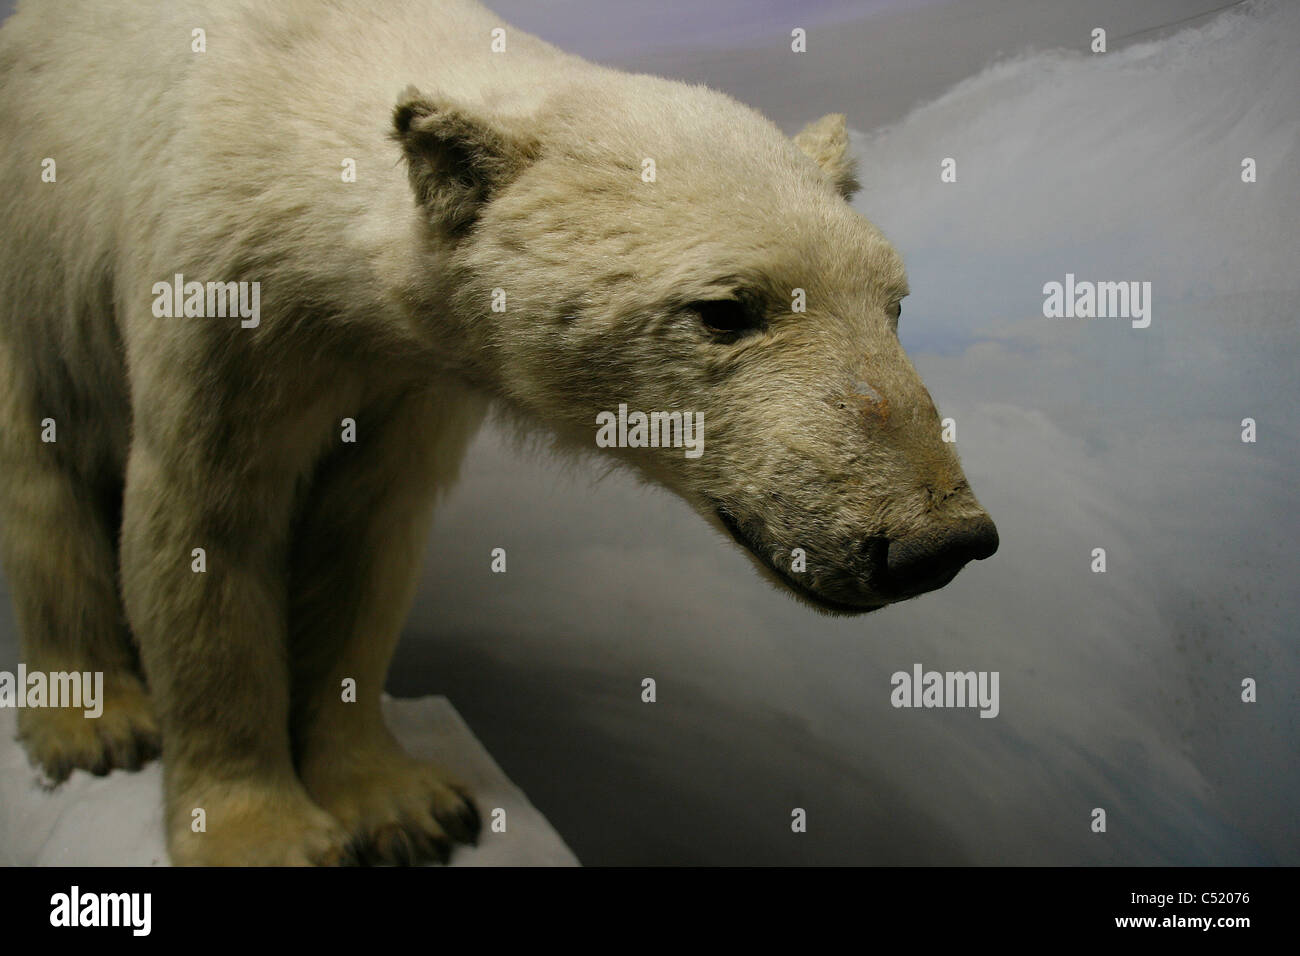 A stuffed / mounted polar bear seen in the Natural history museum of Leipzig, Germany. - Stock Image